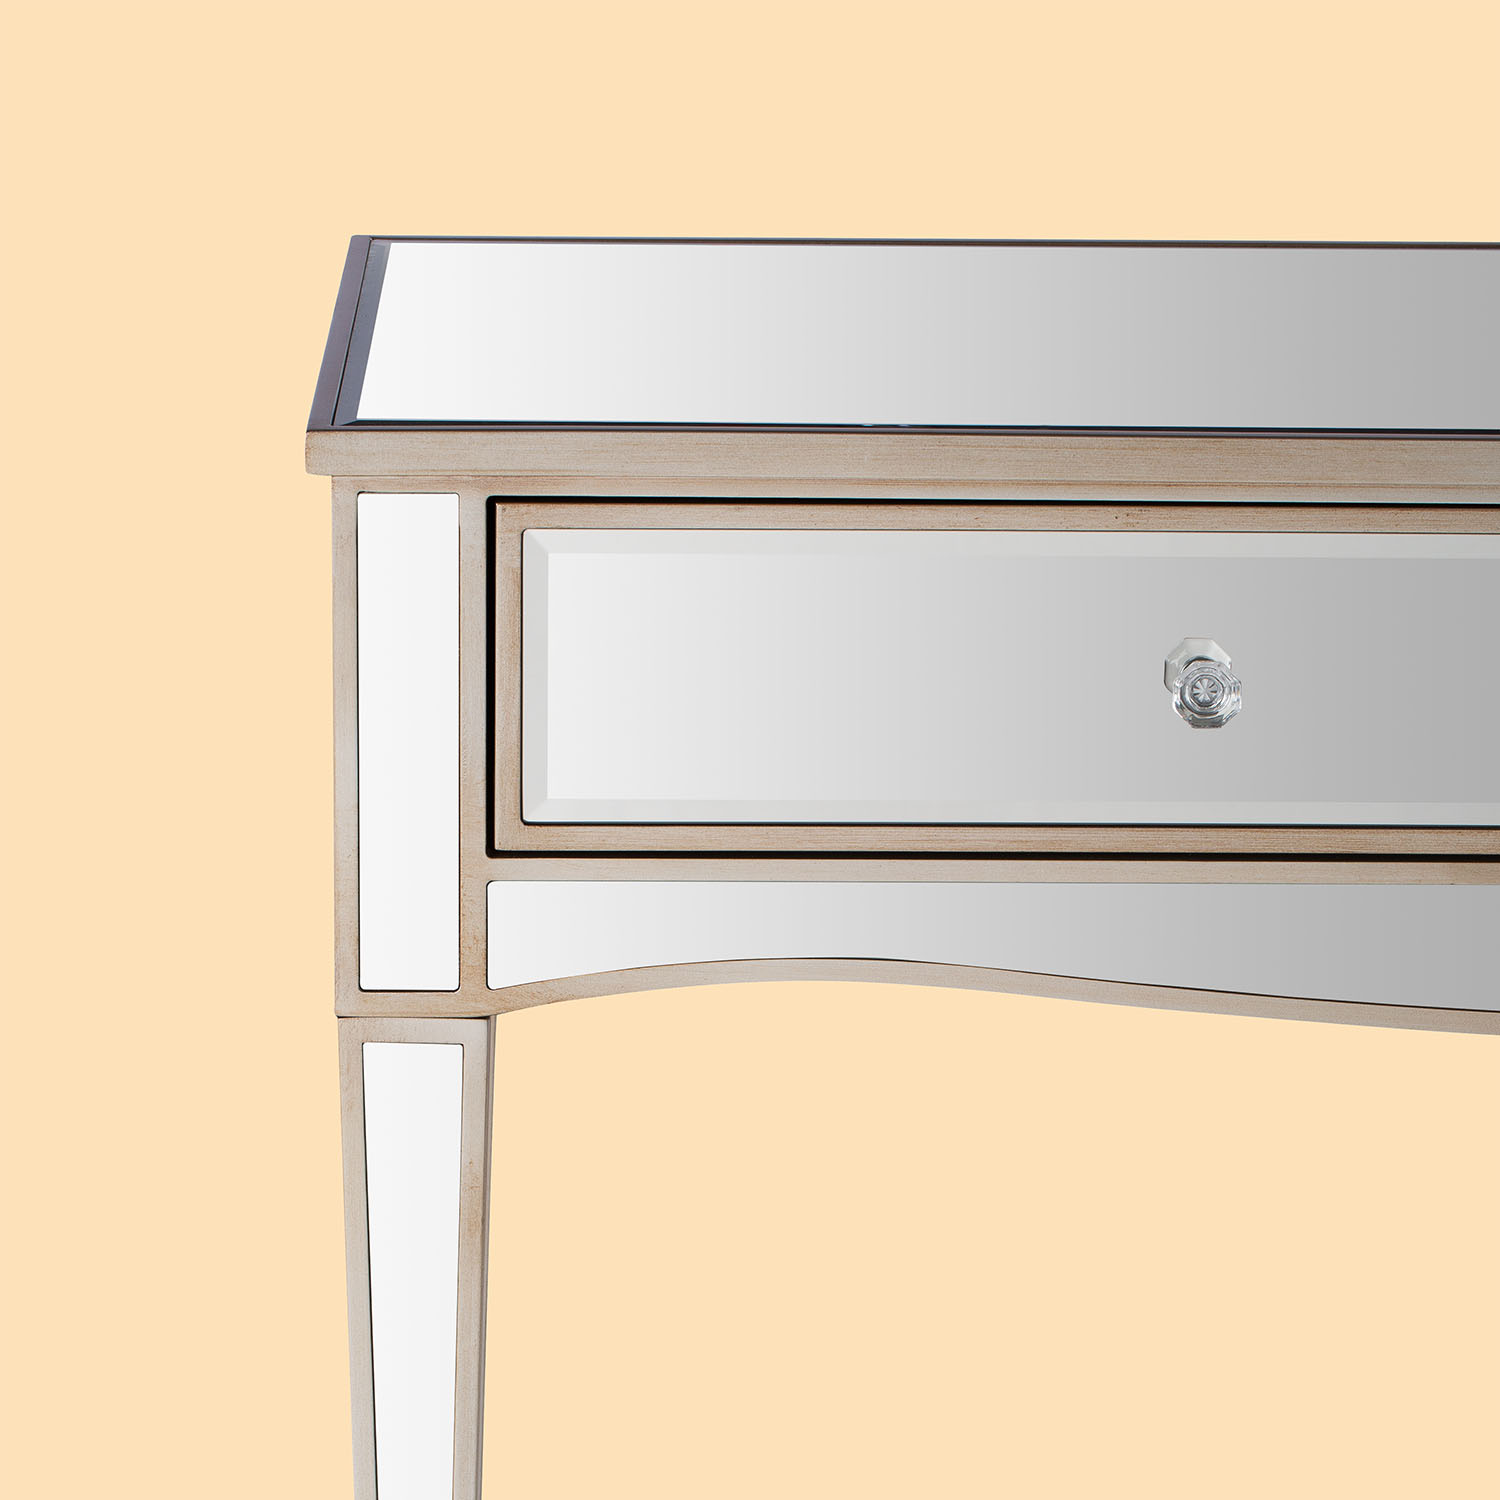 Mirrored table mirror stool furniture product